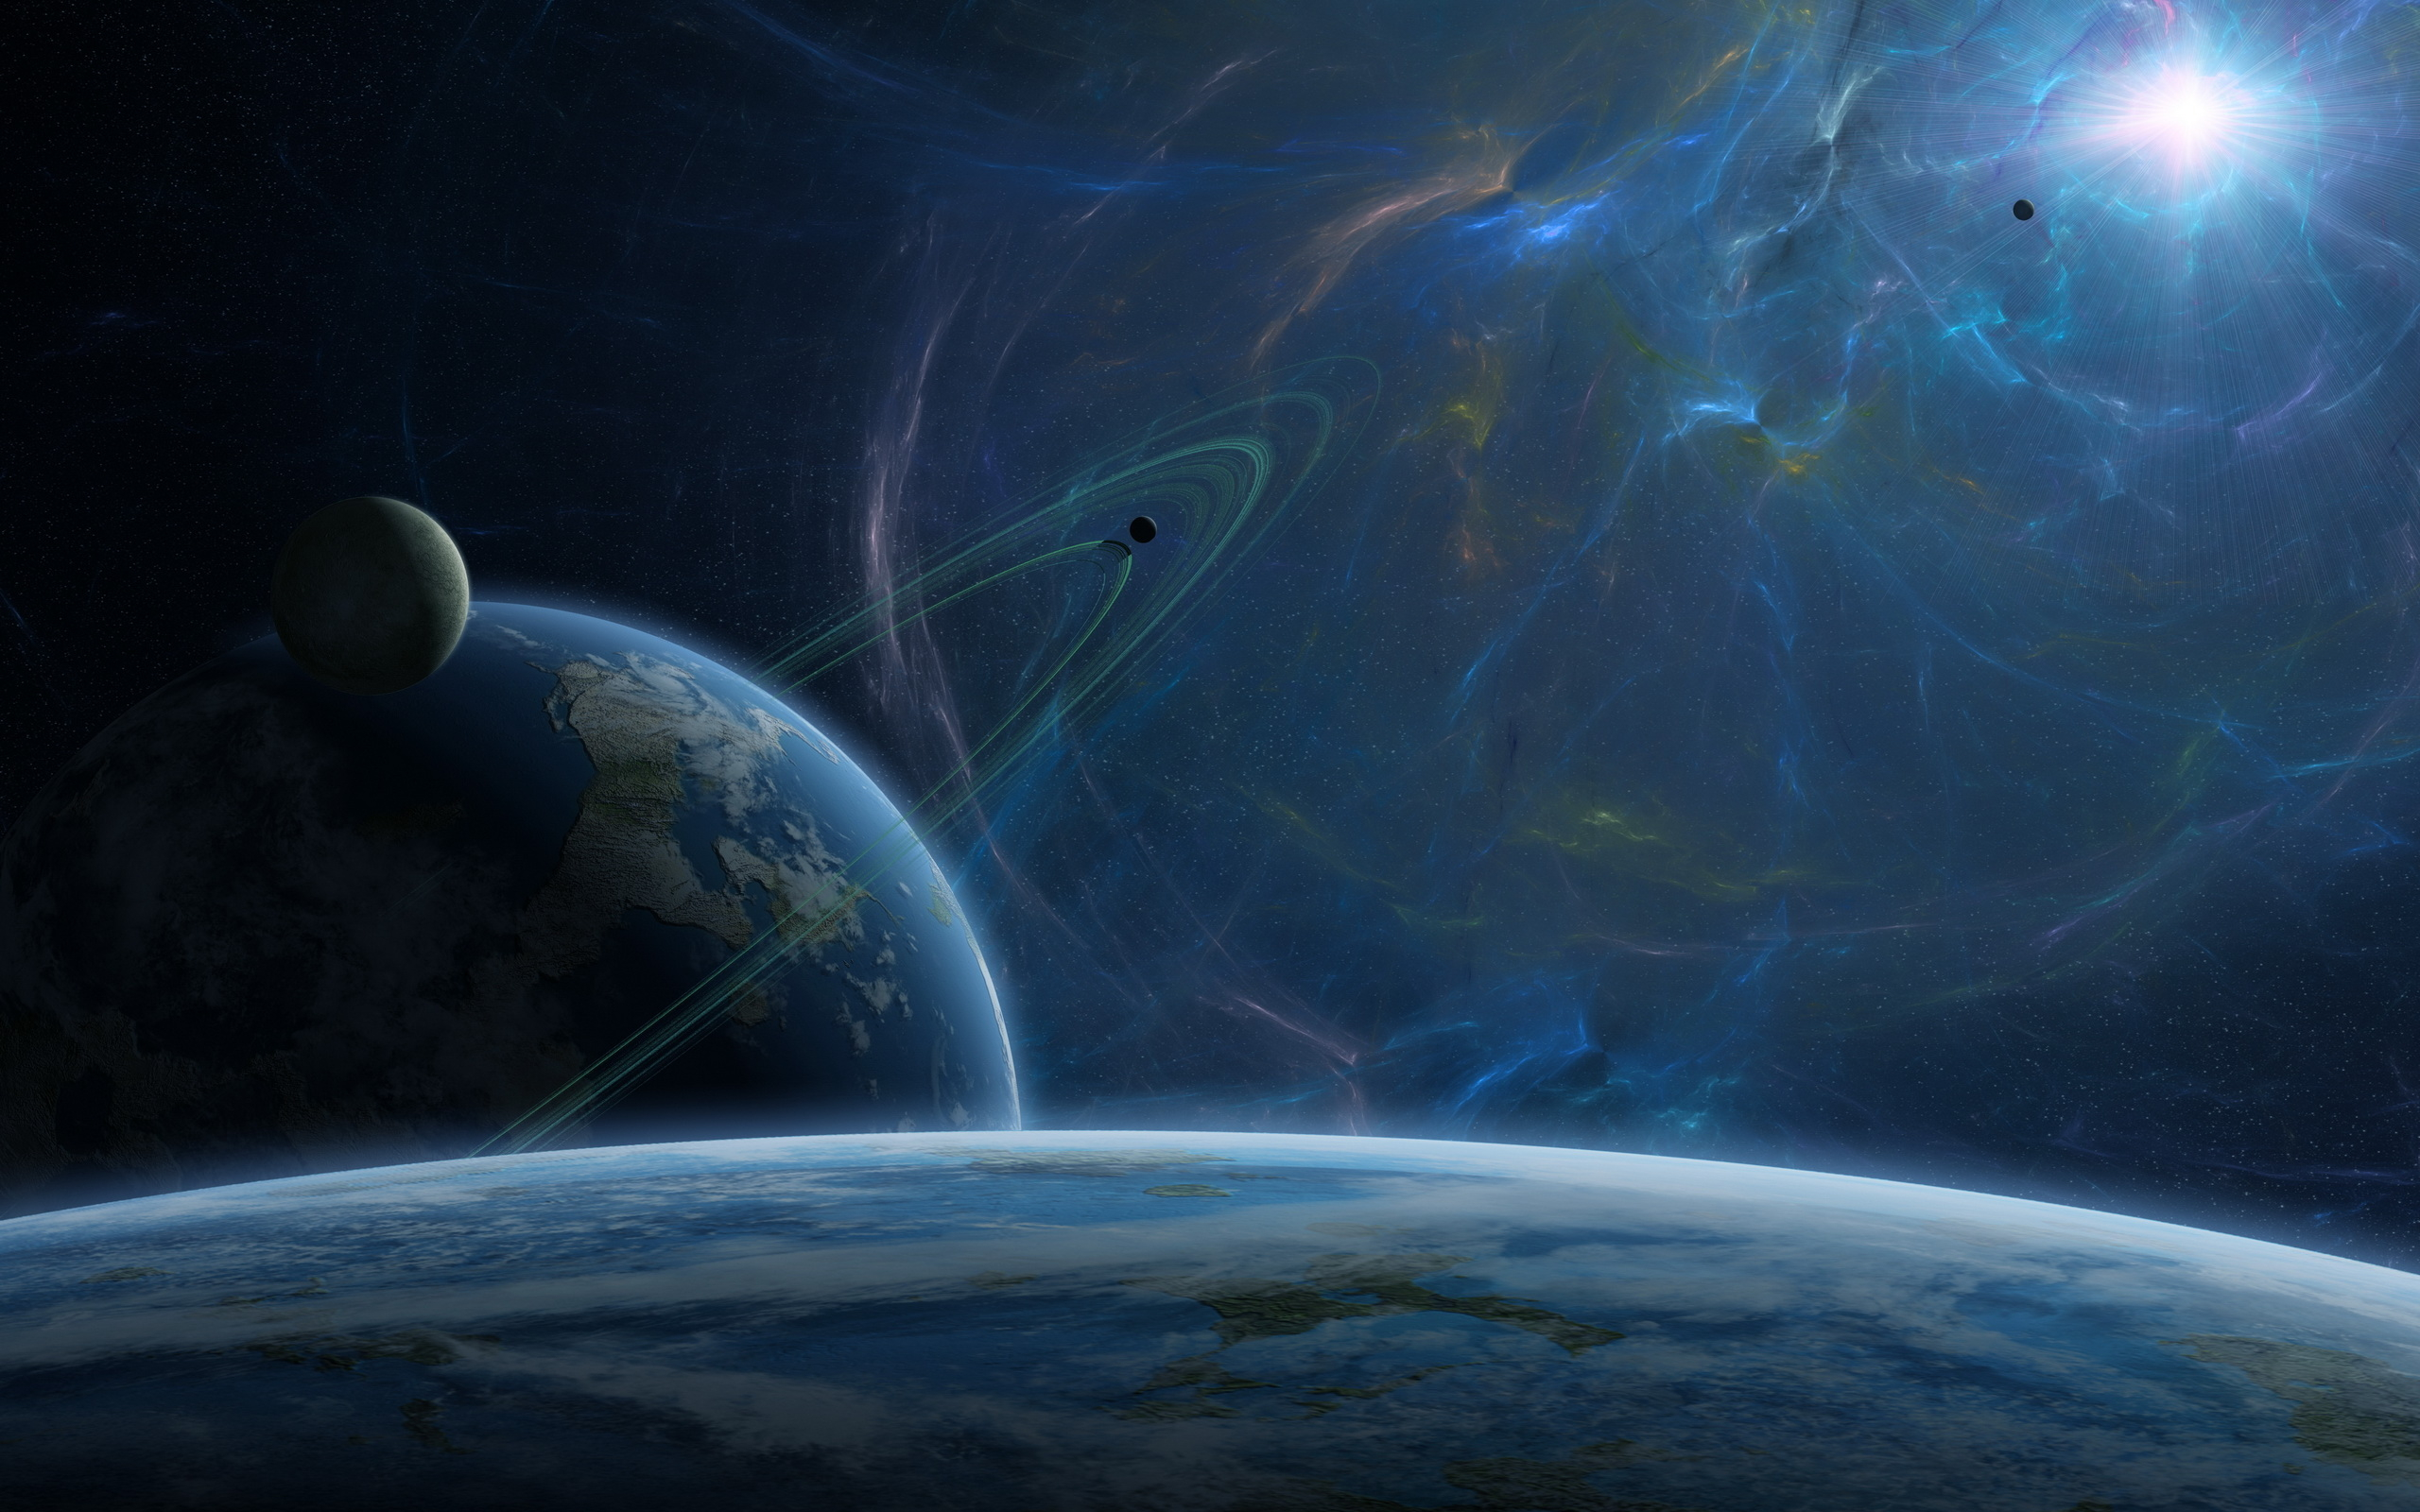 Space Wallpaper Amazon AndroiDreamer Android Wallpaper The Final Frontier